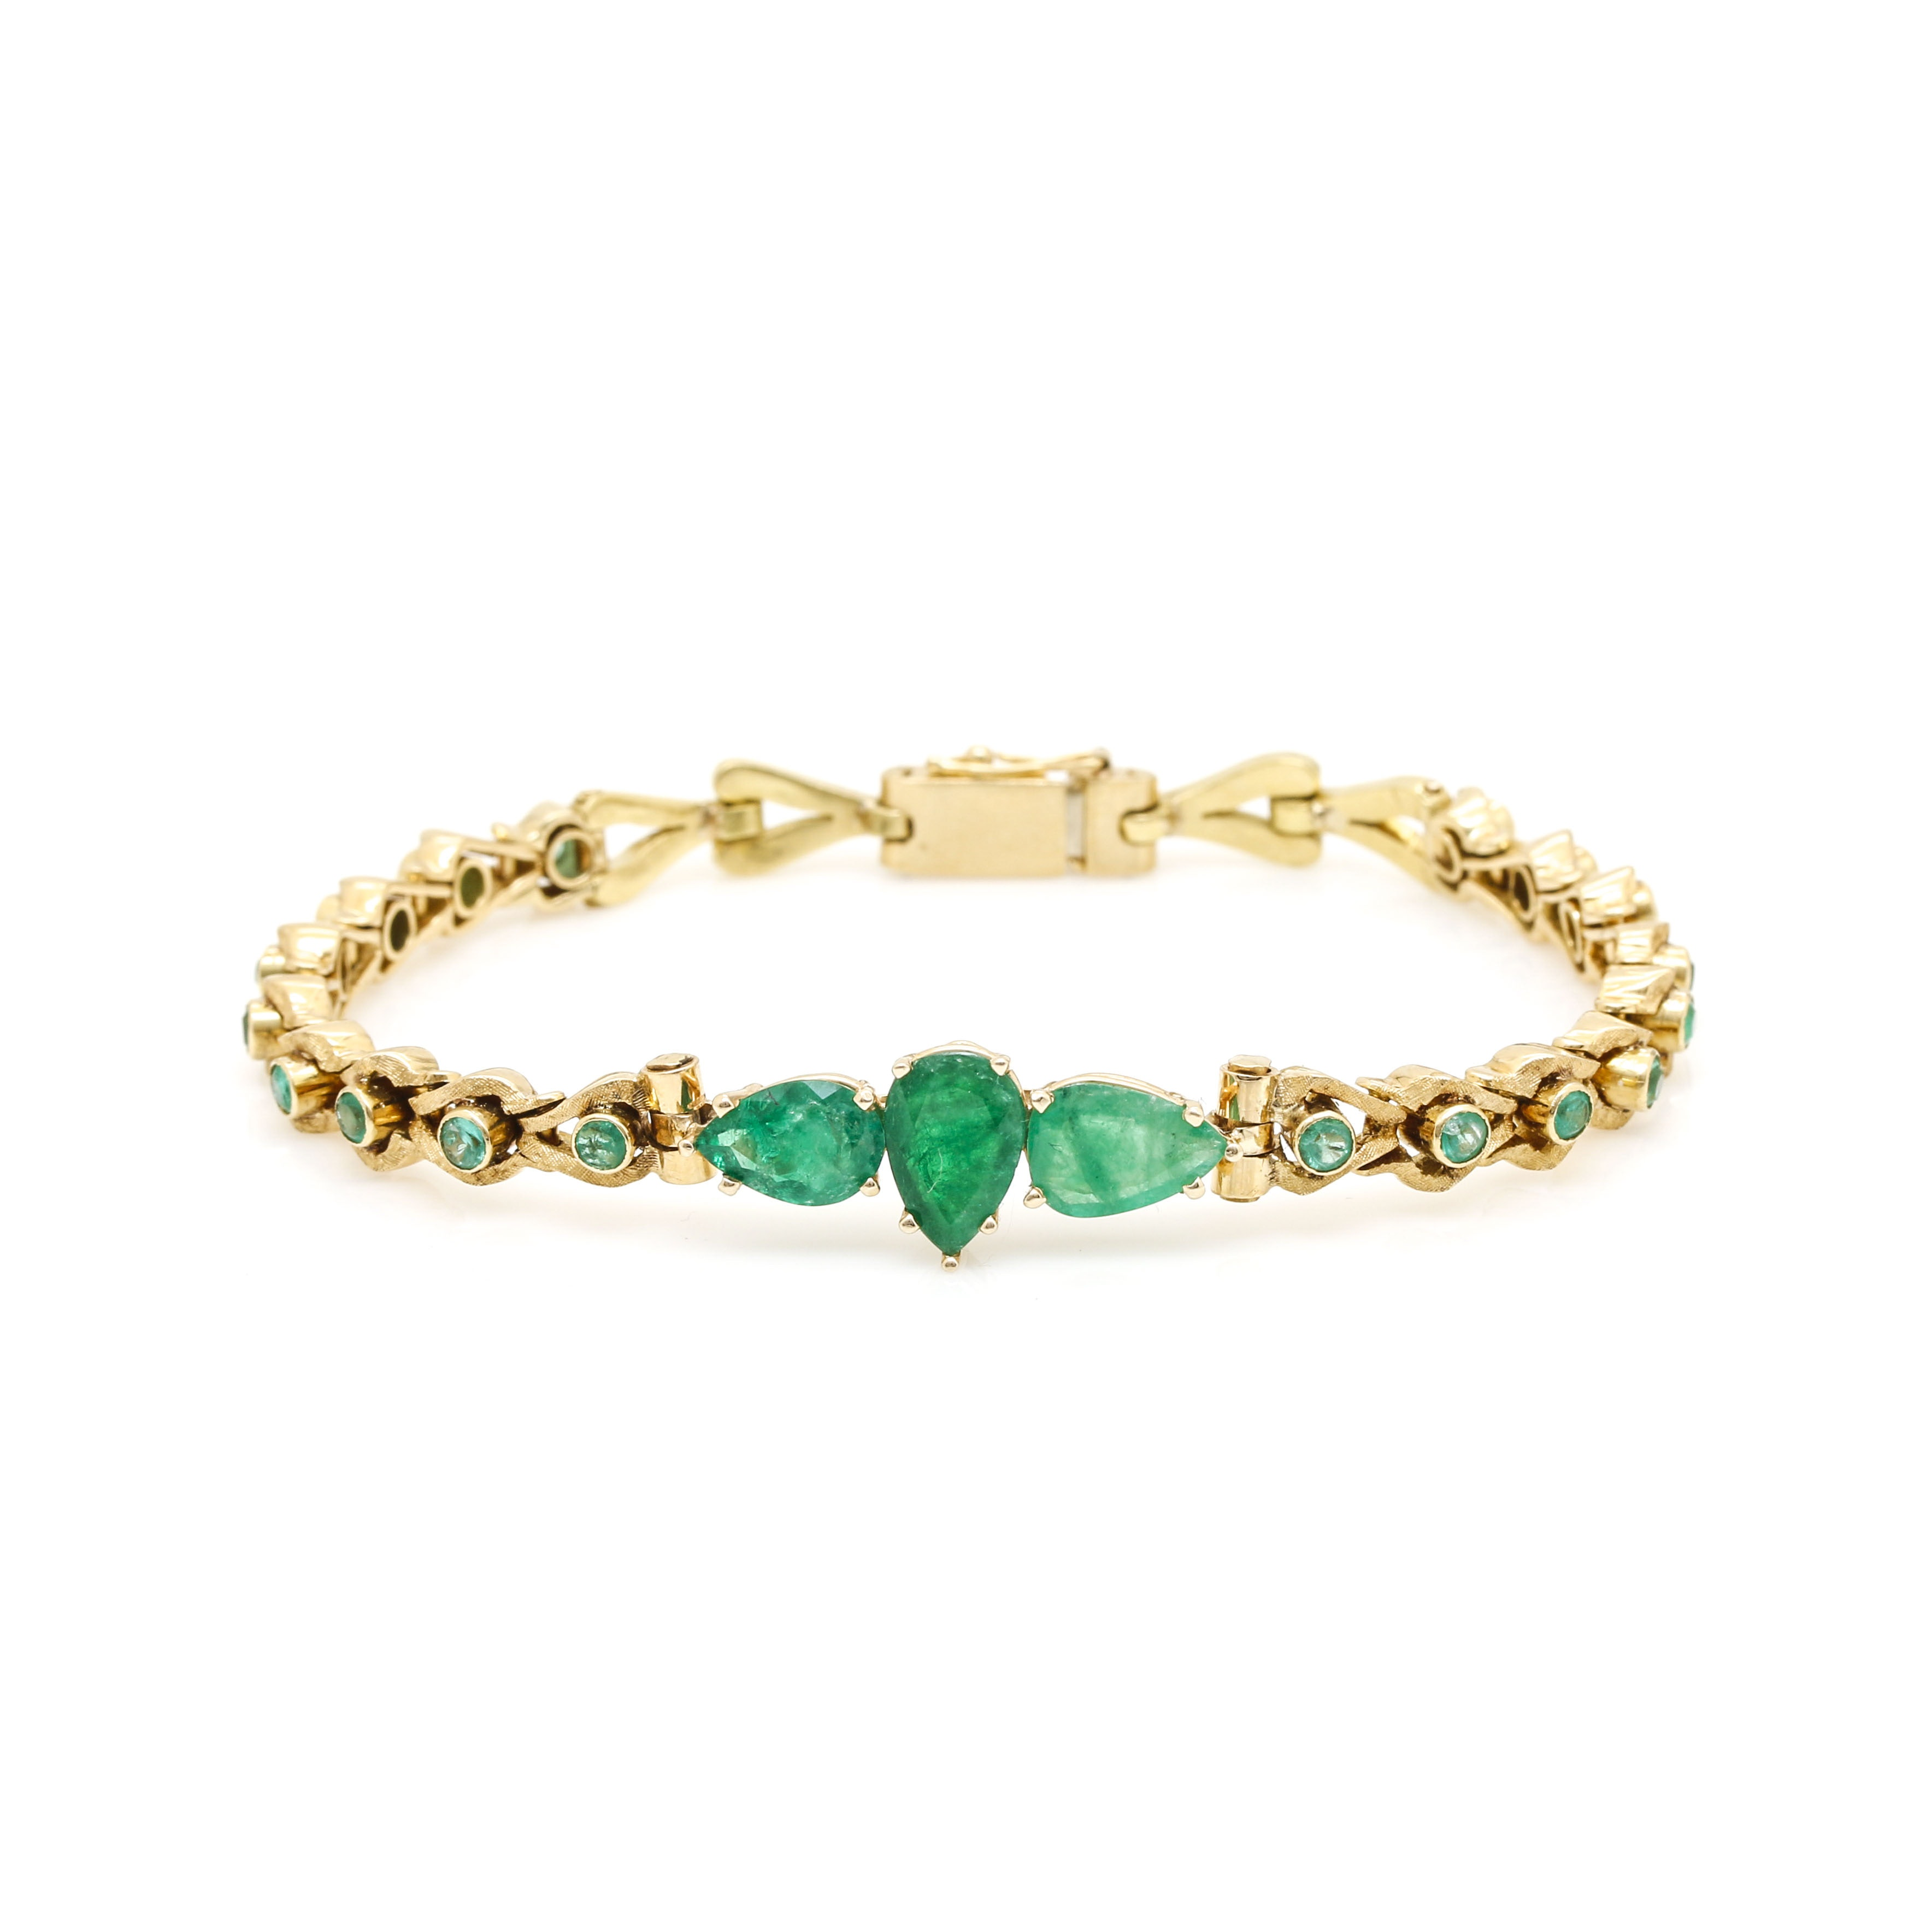 14K and 18K Yellow Gold Emerald Bracelet